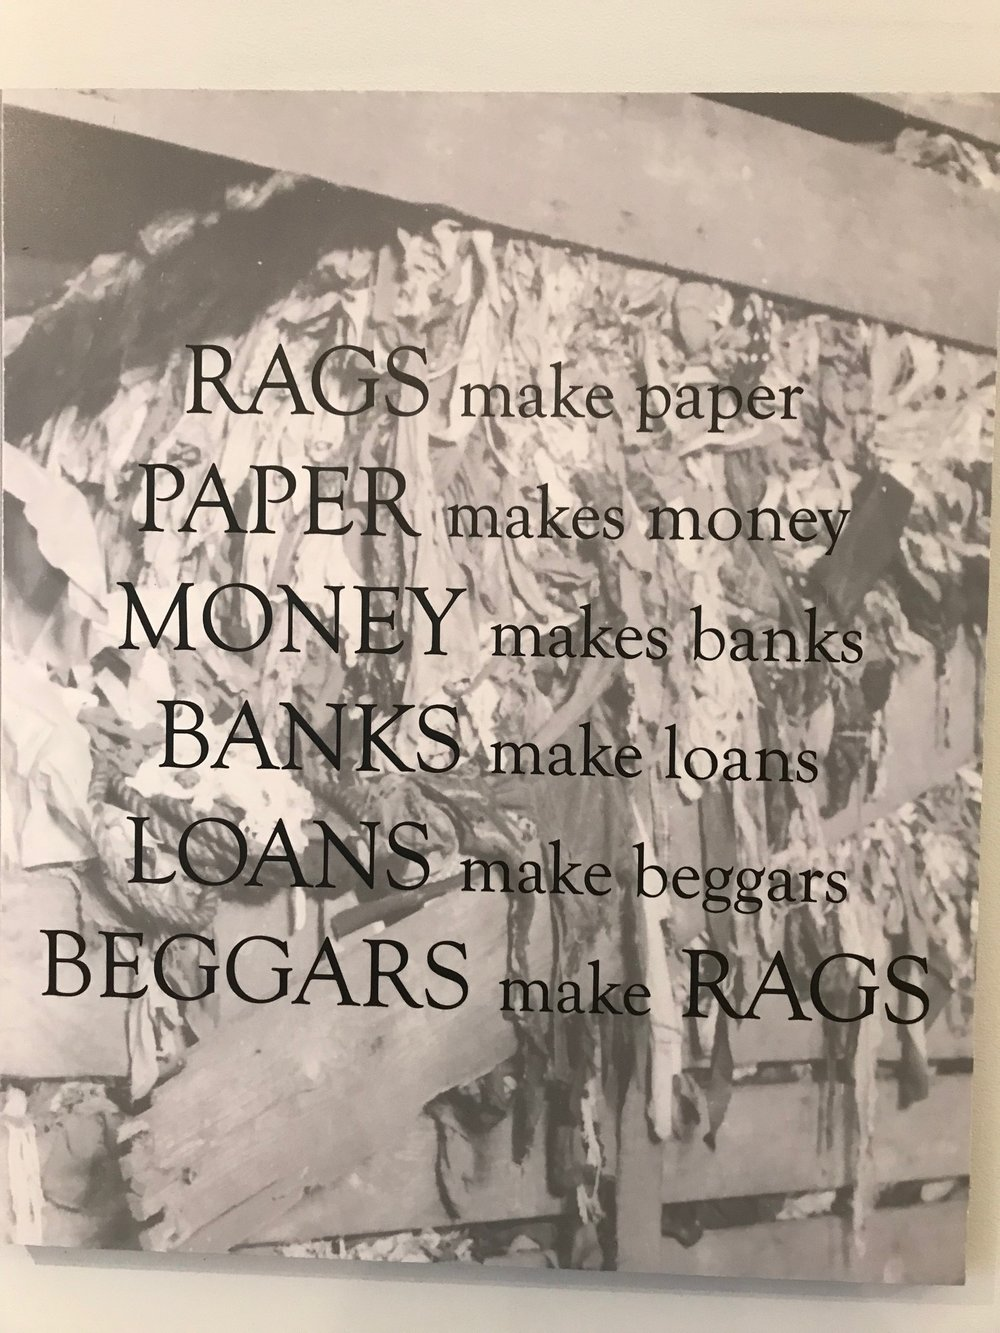 Found this in a display case at the Robert C. Williams Museum of Papermaking, on the campus of the Georgia Tech in Atlanta. If you are in Atlanta, the museum is definitely worth a visit.